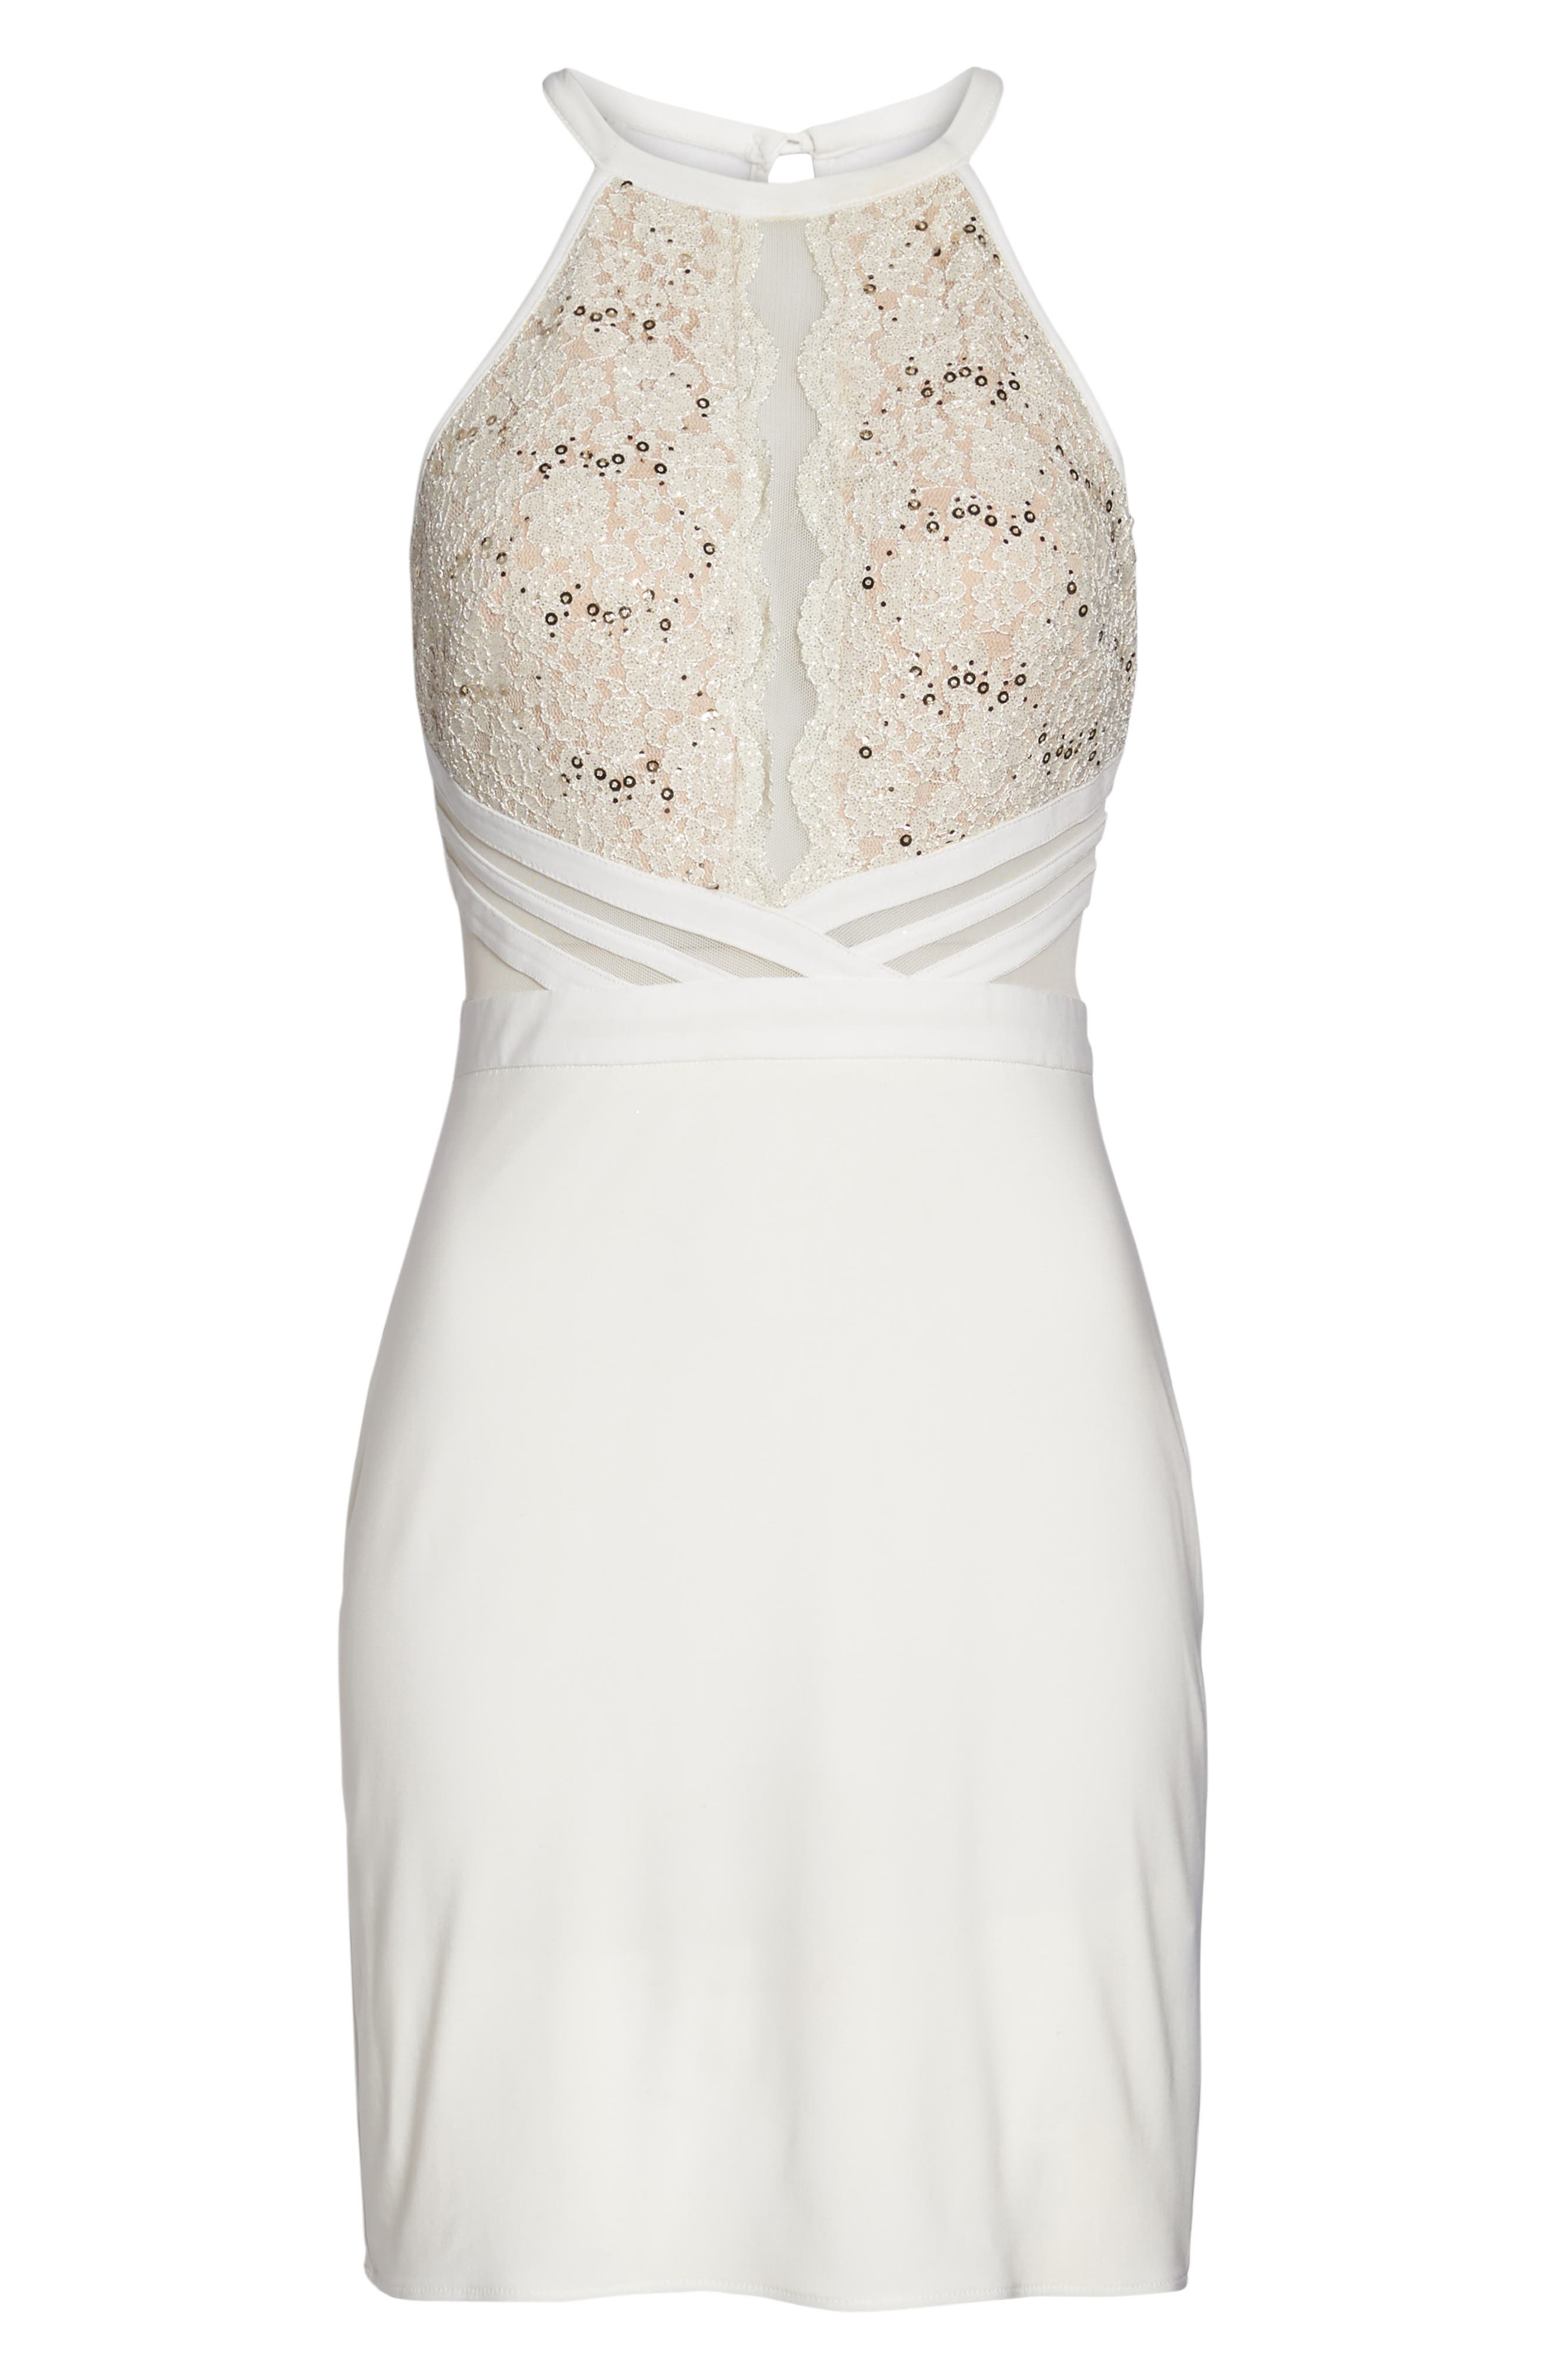 Scallop Lace Bodice Body-Con Dress,                             Alternate thumbnail 6, color,                             Ivory/ Nude